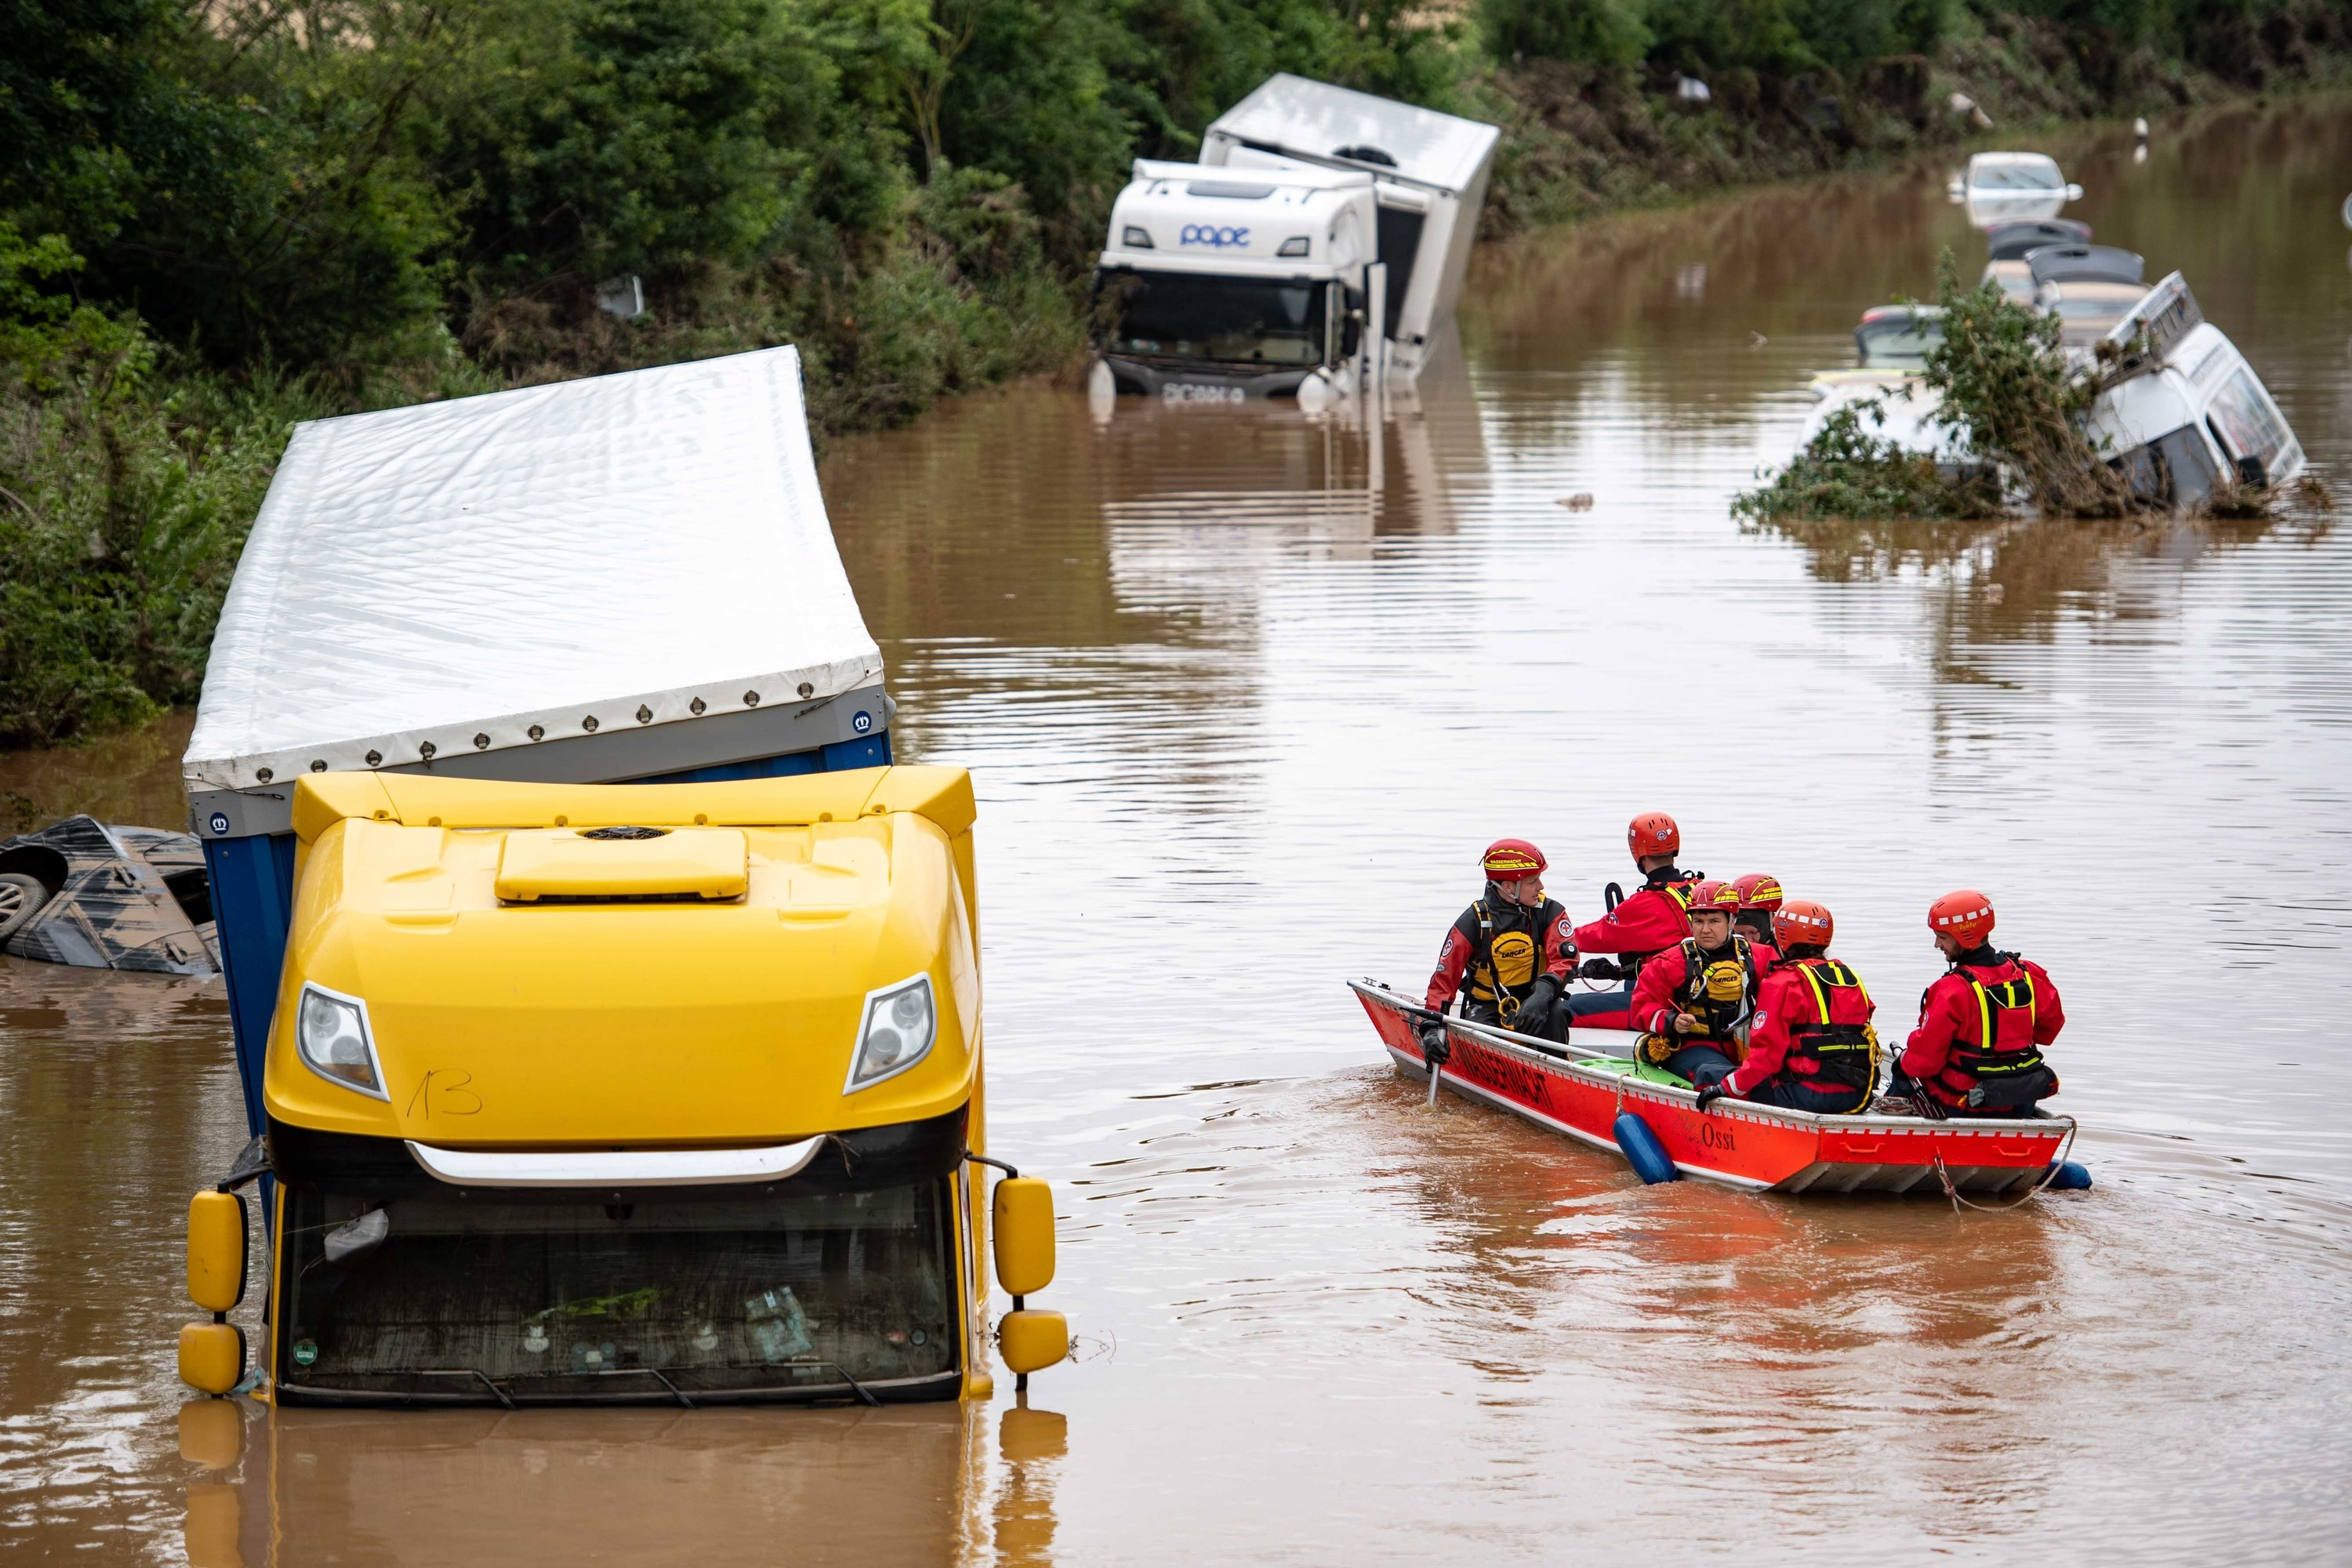 submerged trucks on a highway are approached by firefighters in a boat